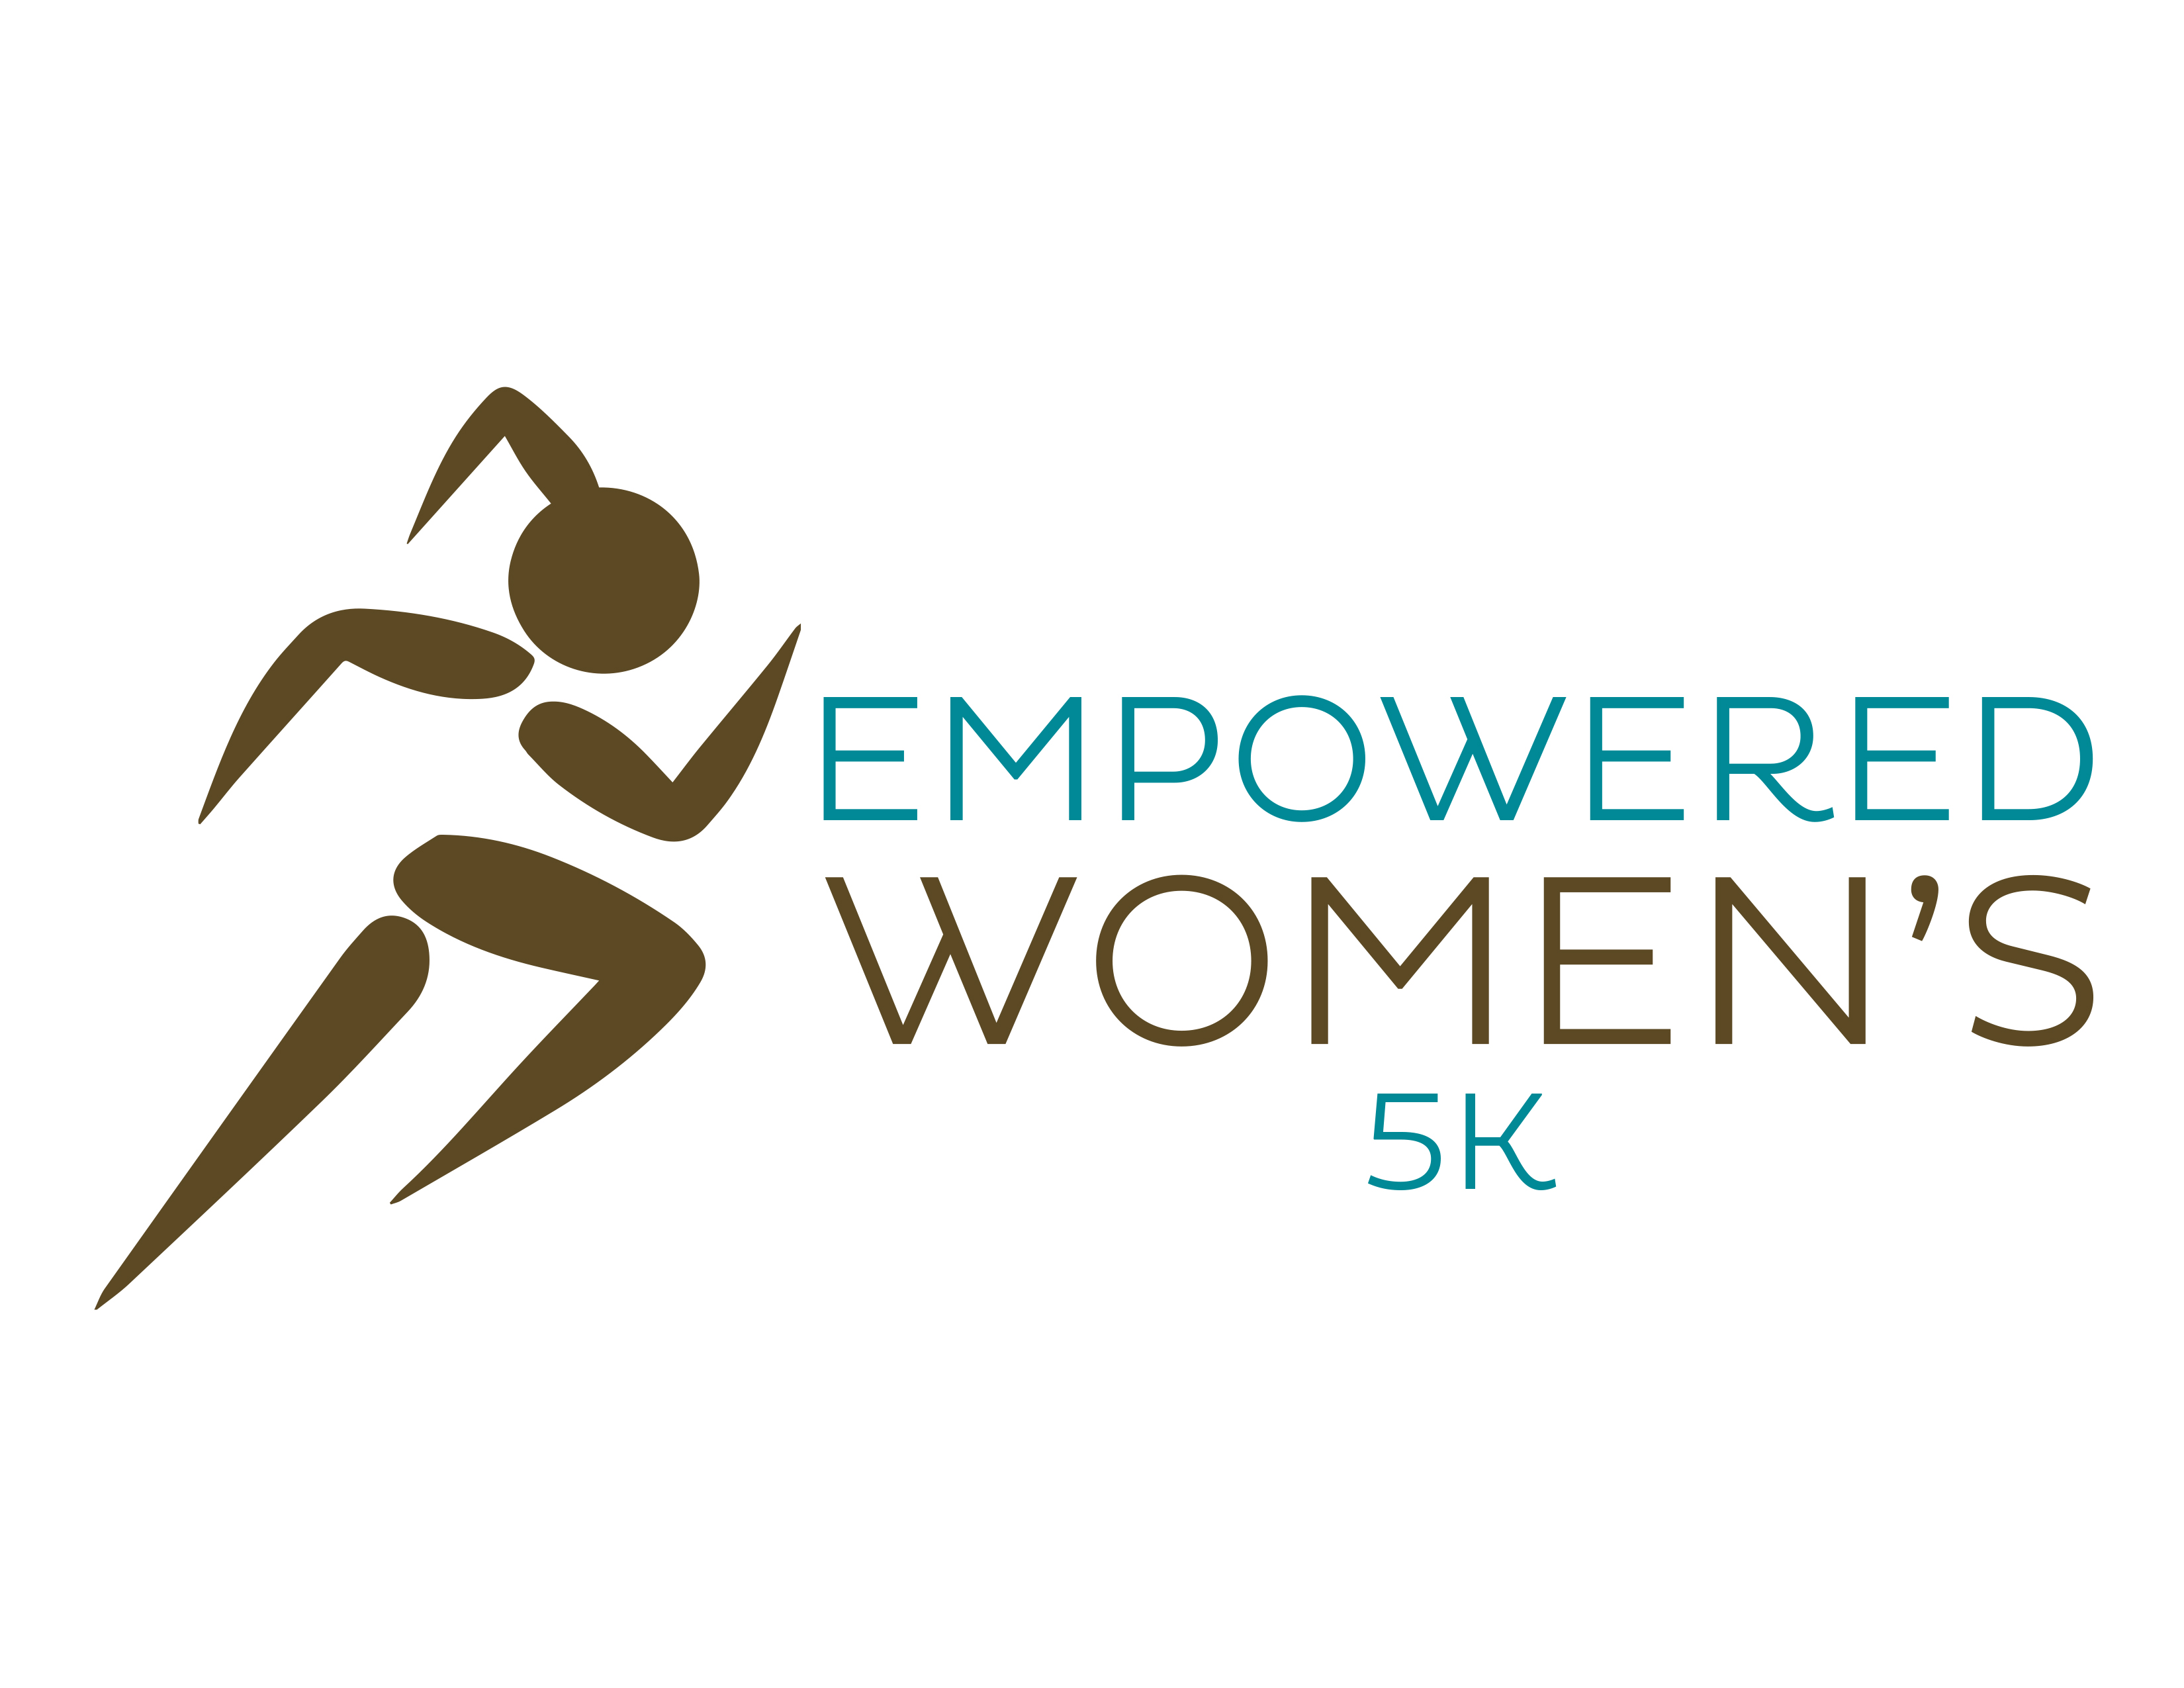 Empowered Women's 5k